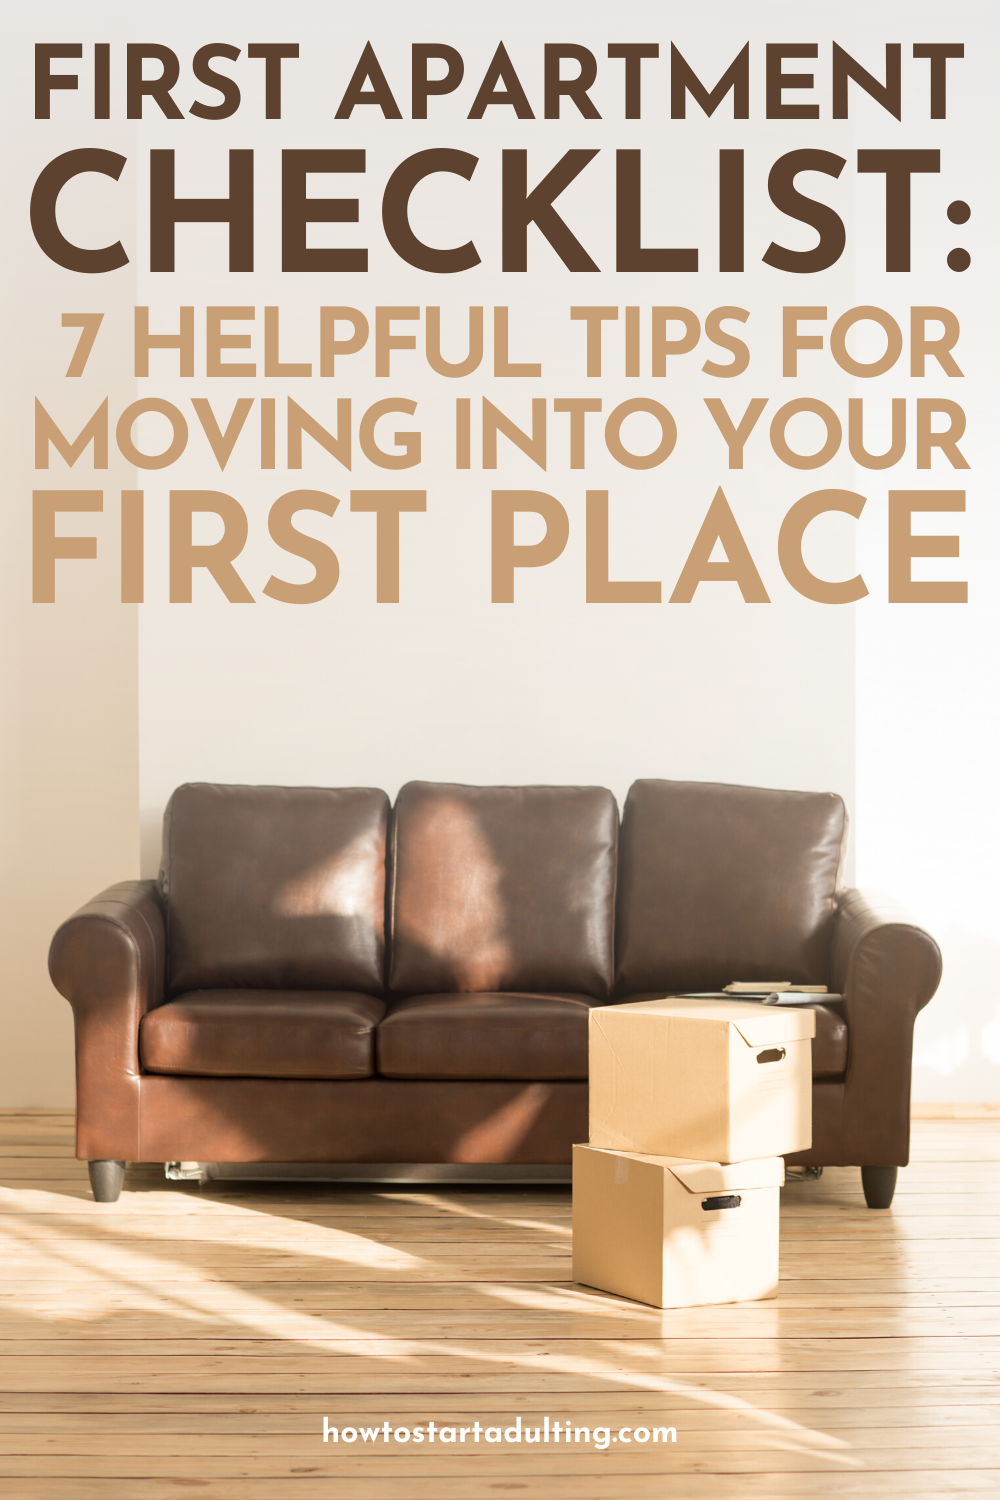 First Apartment Checklist_ 7 Tips For Moving Into Your First Place #adulting #movingtips #movein #moveout #movingout #firstapartment #movingchecklist